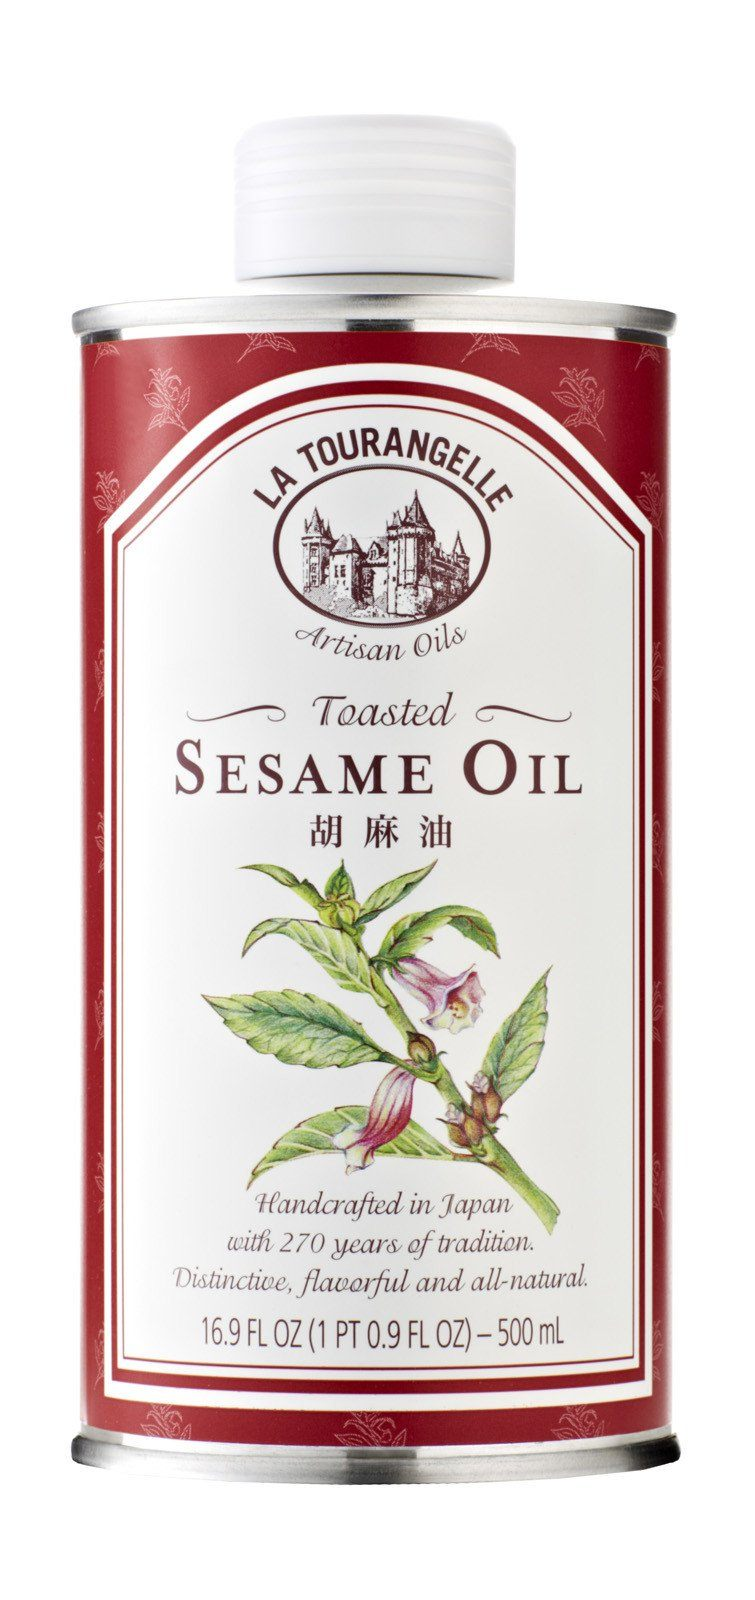 Food & Drink - La Tourangelle - Toasted Sesame Oil, 500ml